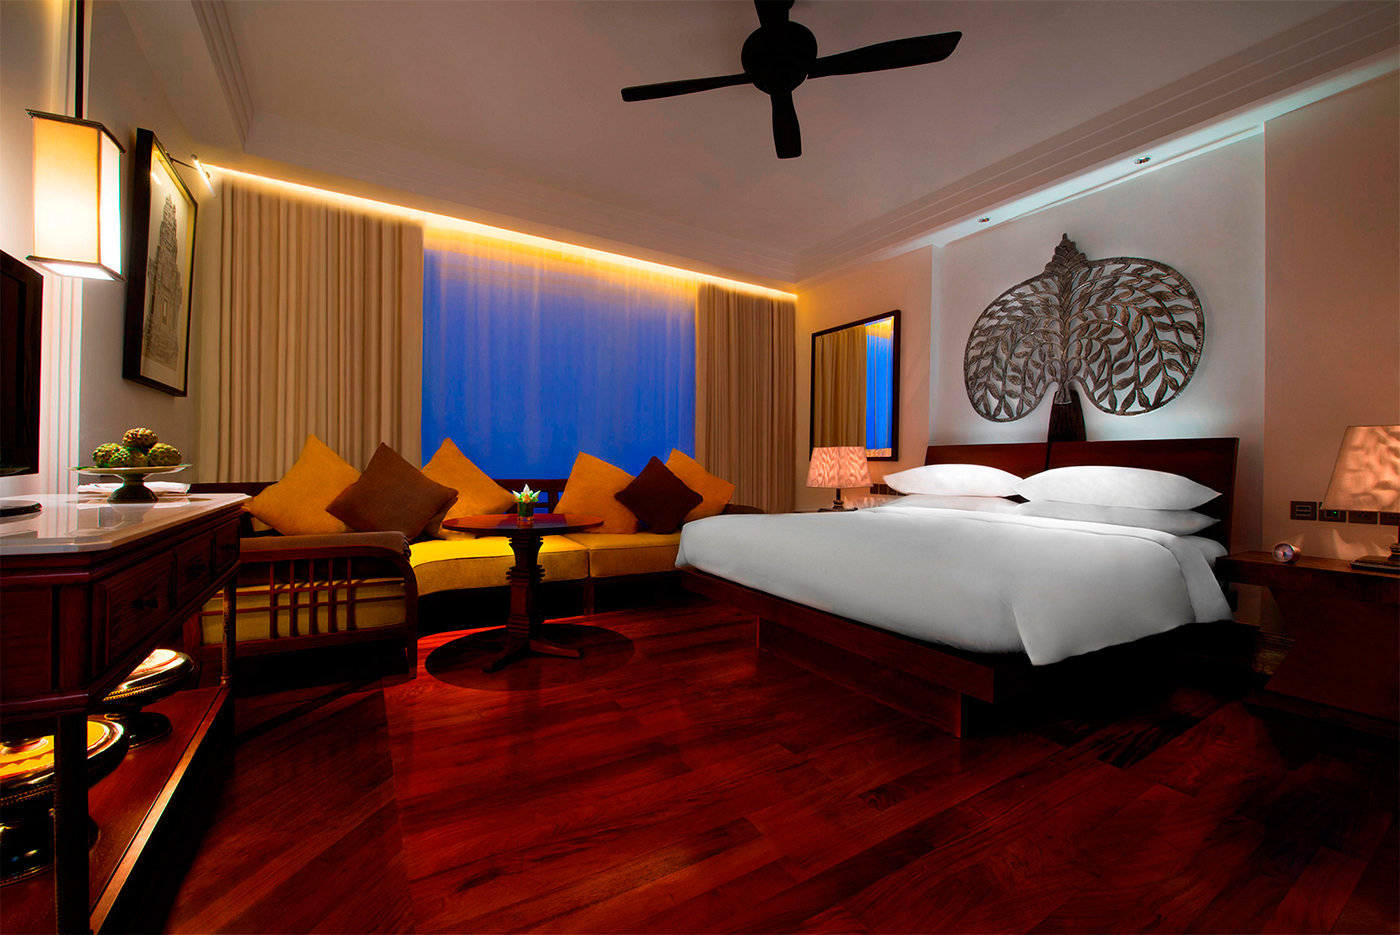 Anantara Hotels adopts IDeaS Pricing System